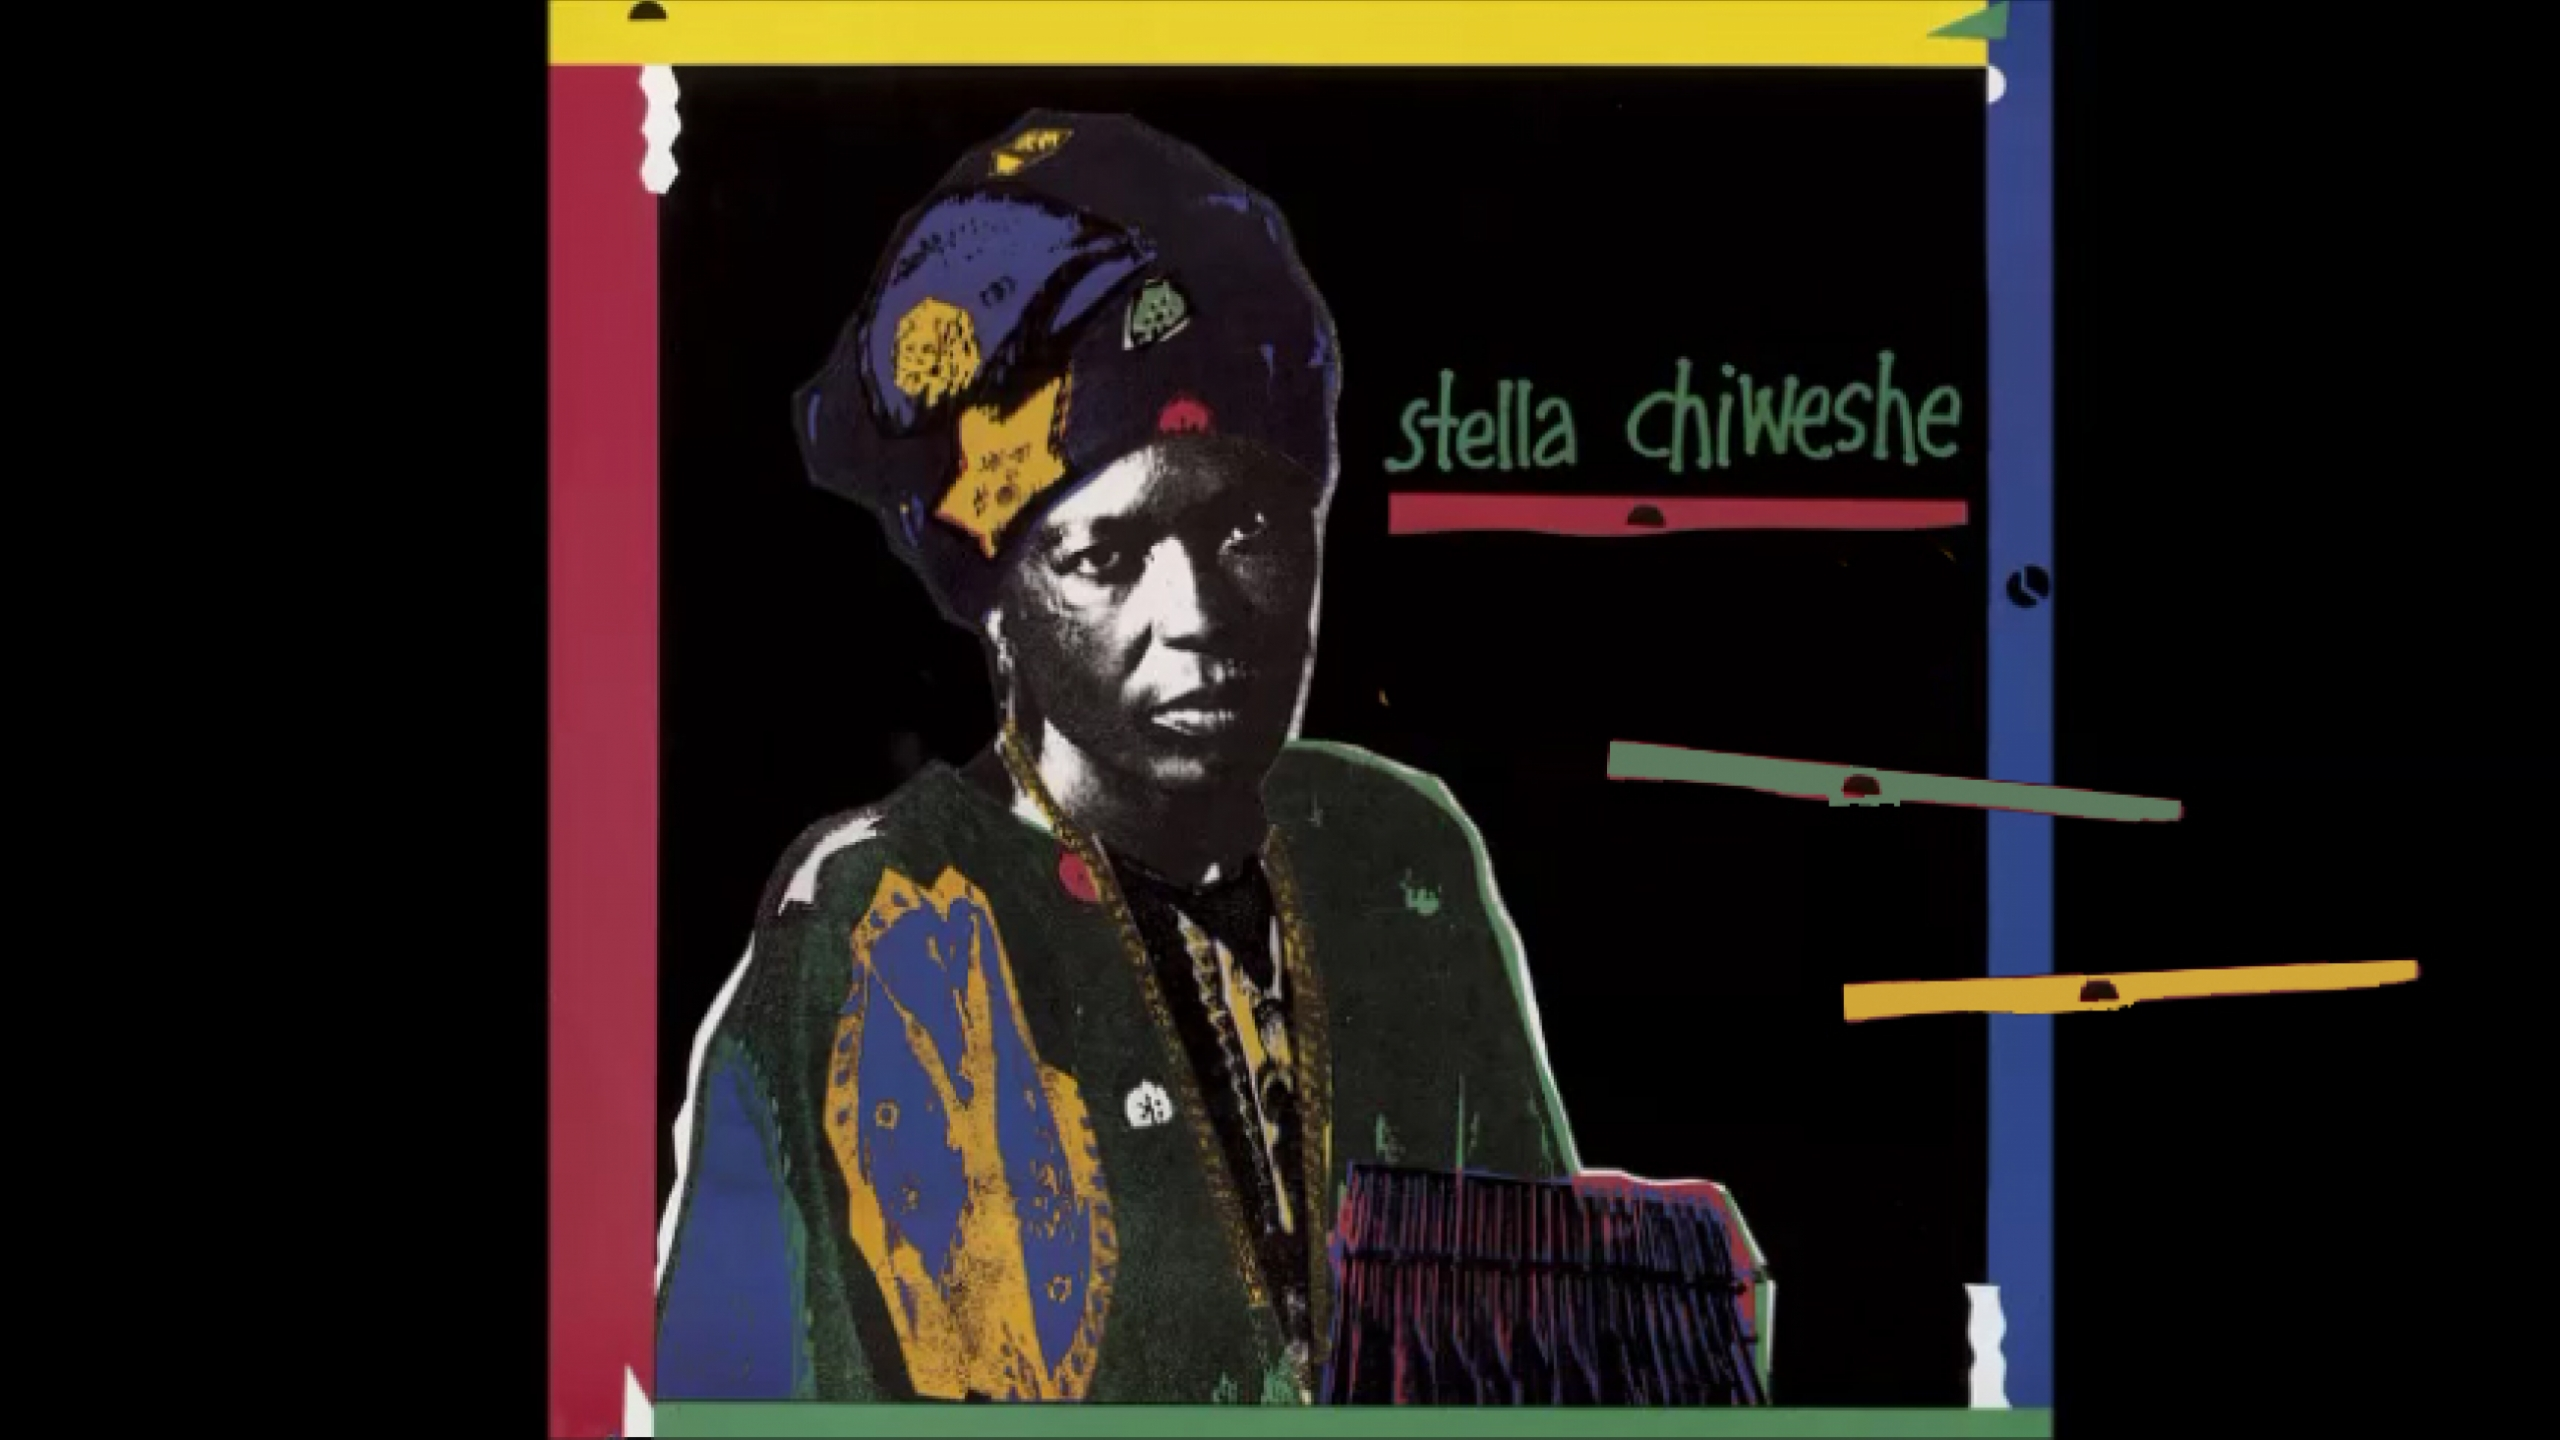 stellachiweshe_foto_cover